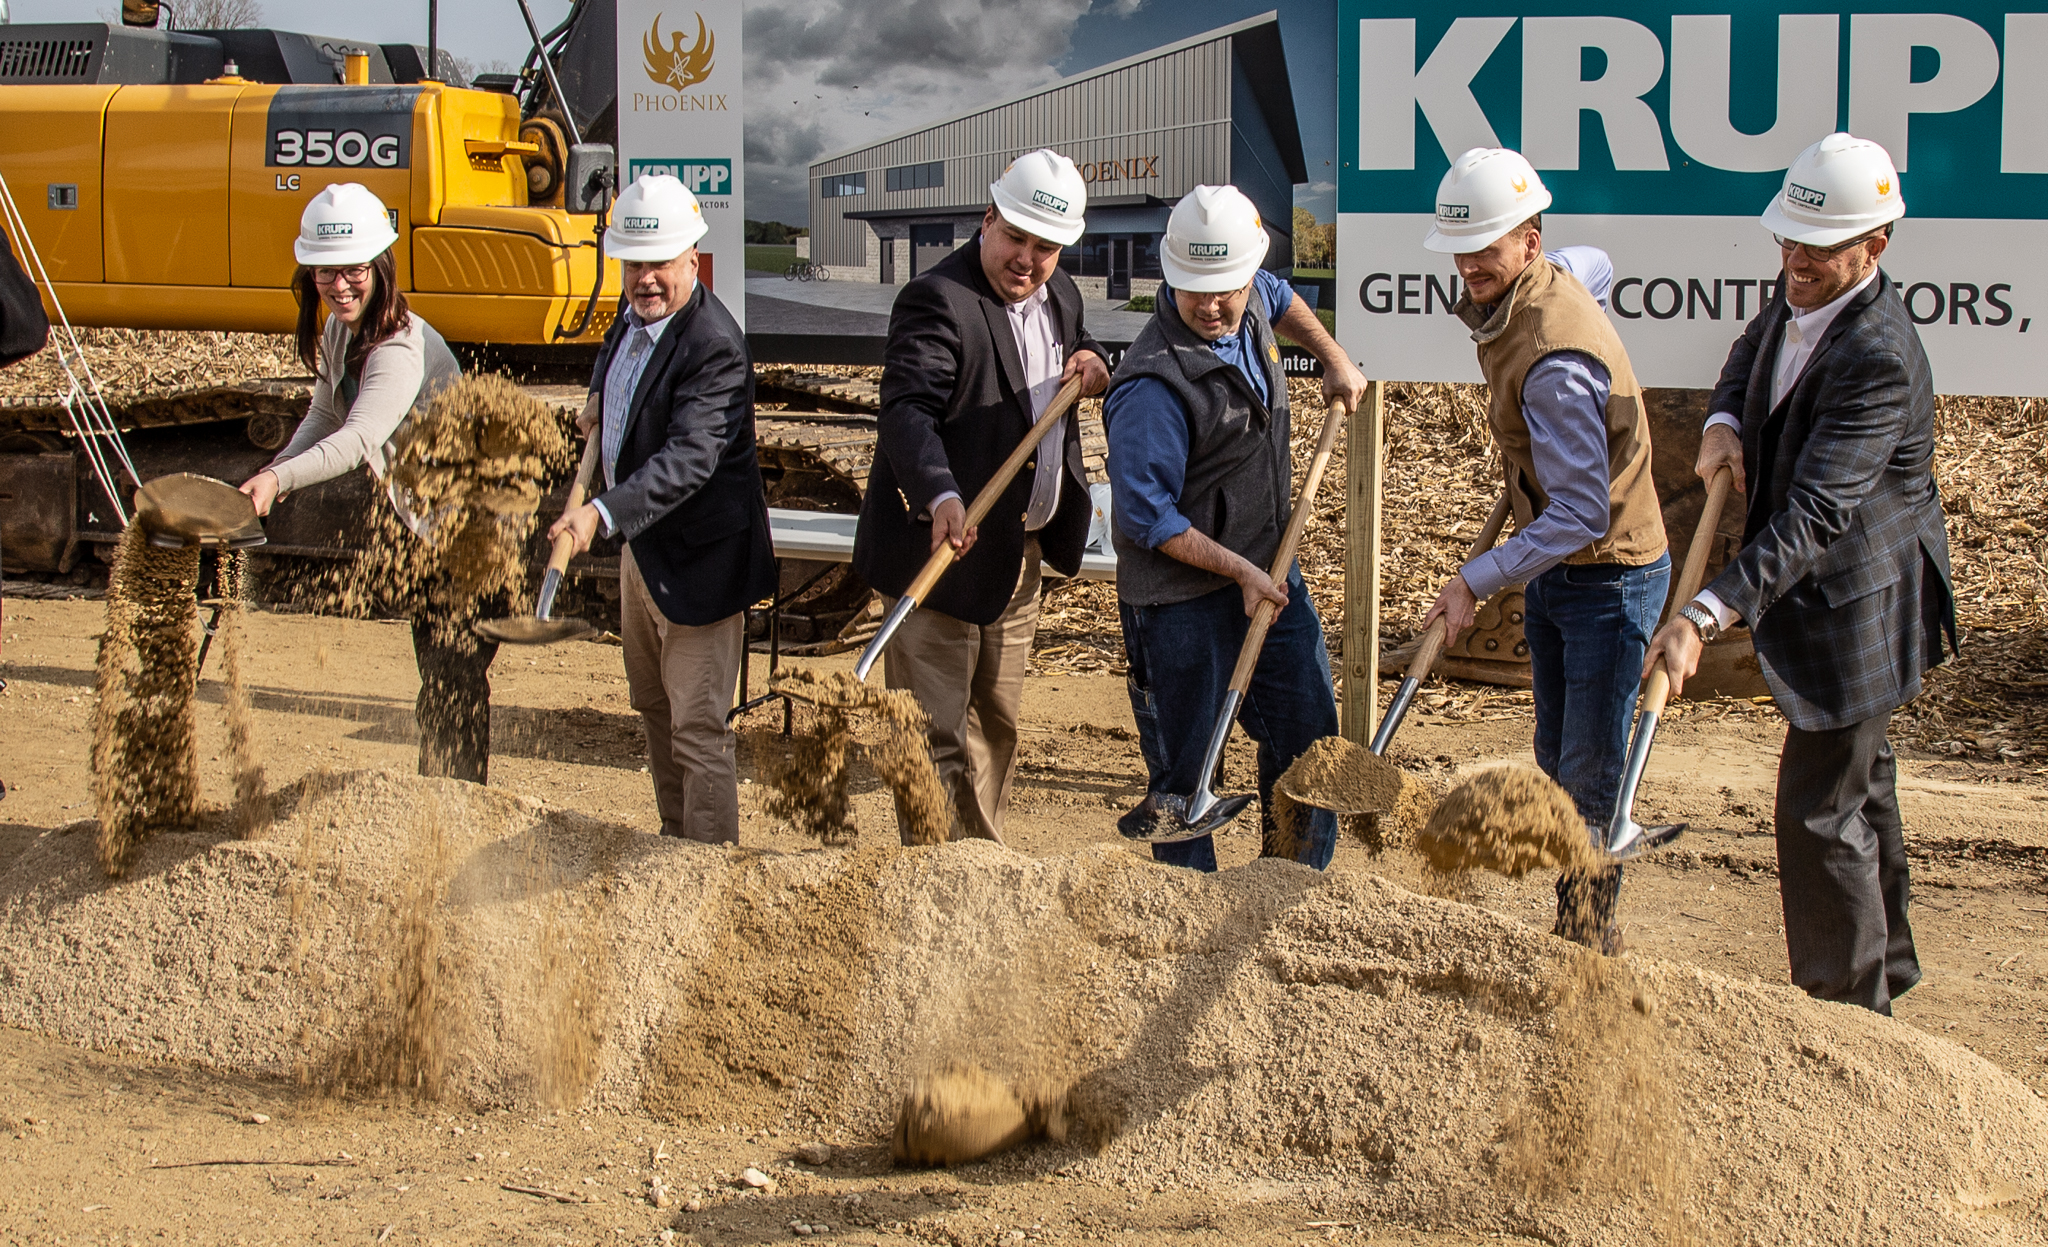 October 2018 - Groundbreaking on the site of Phoenix's upcoming neutron imaging facility in Fitchburg, WI